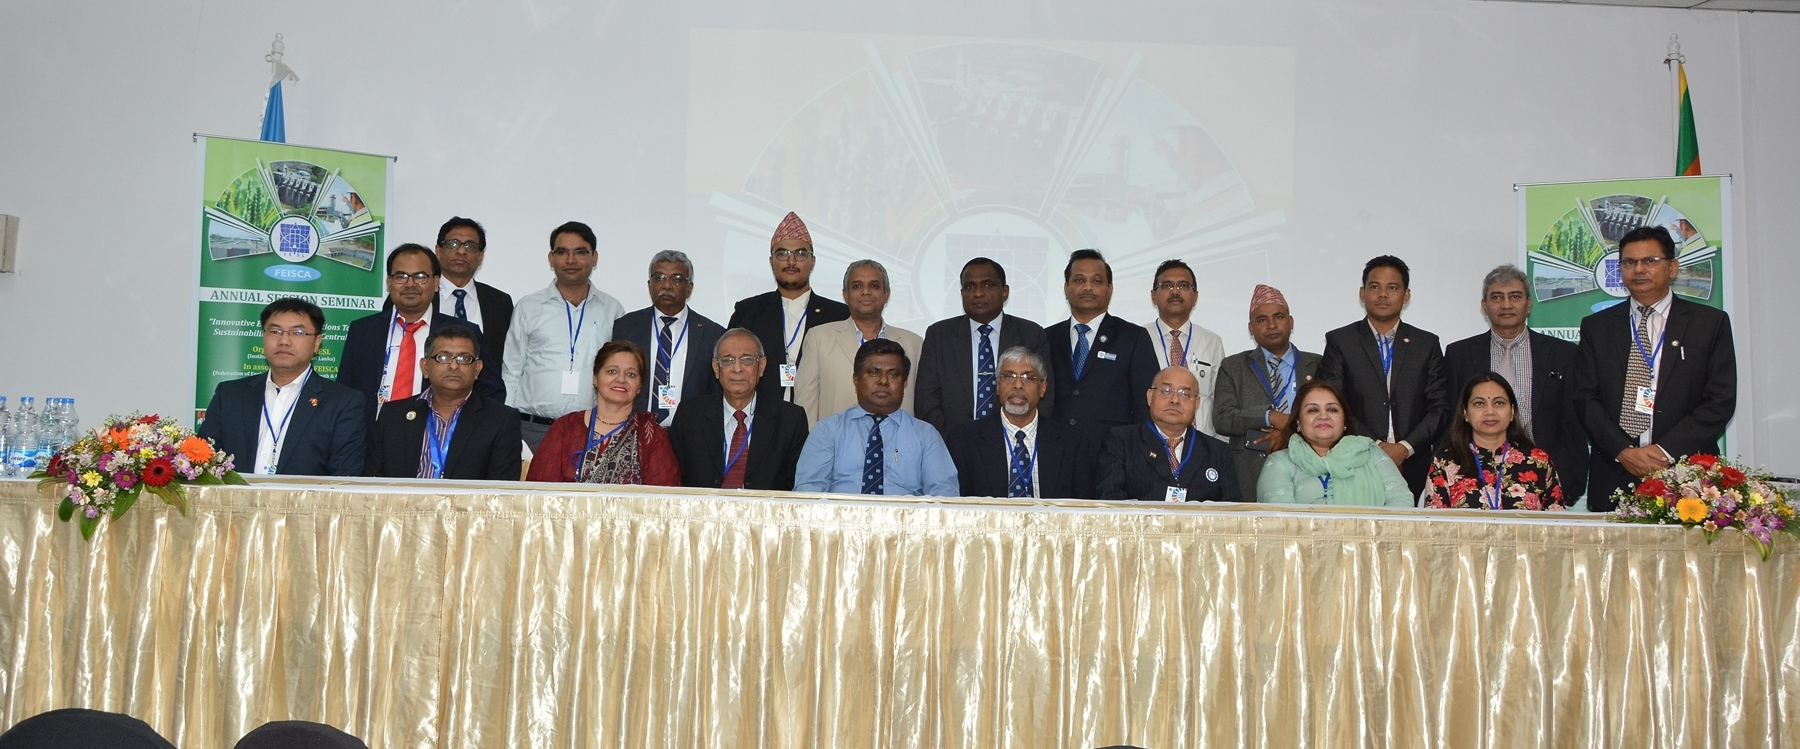 FEISCA - ANNUAL SESSION SEMINAR - COLOMBO